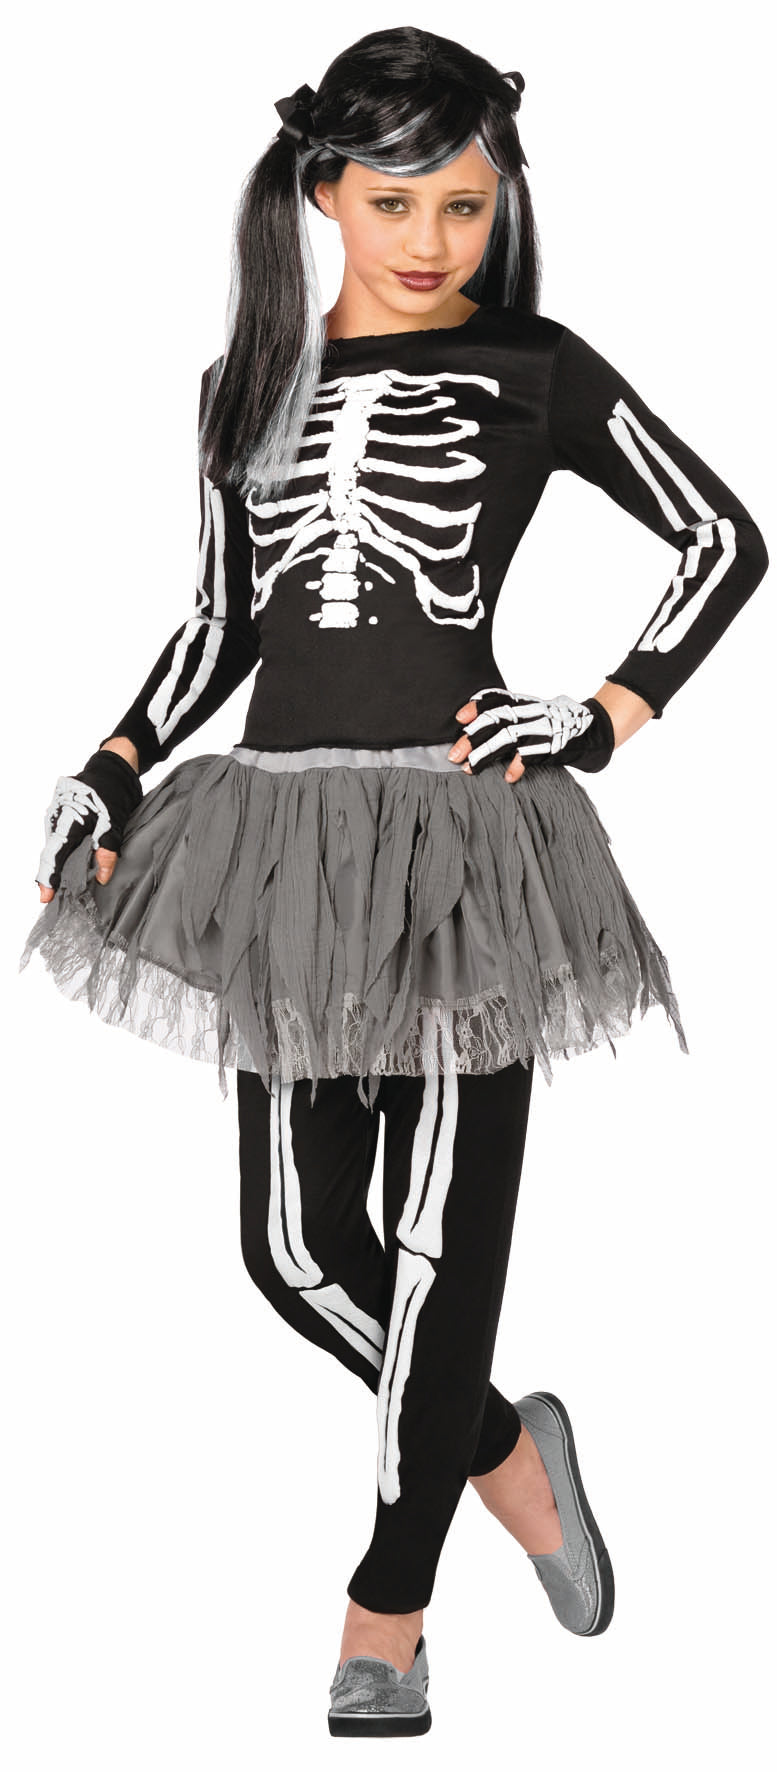 White Skeleton Child's Costume